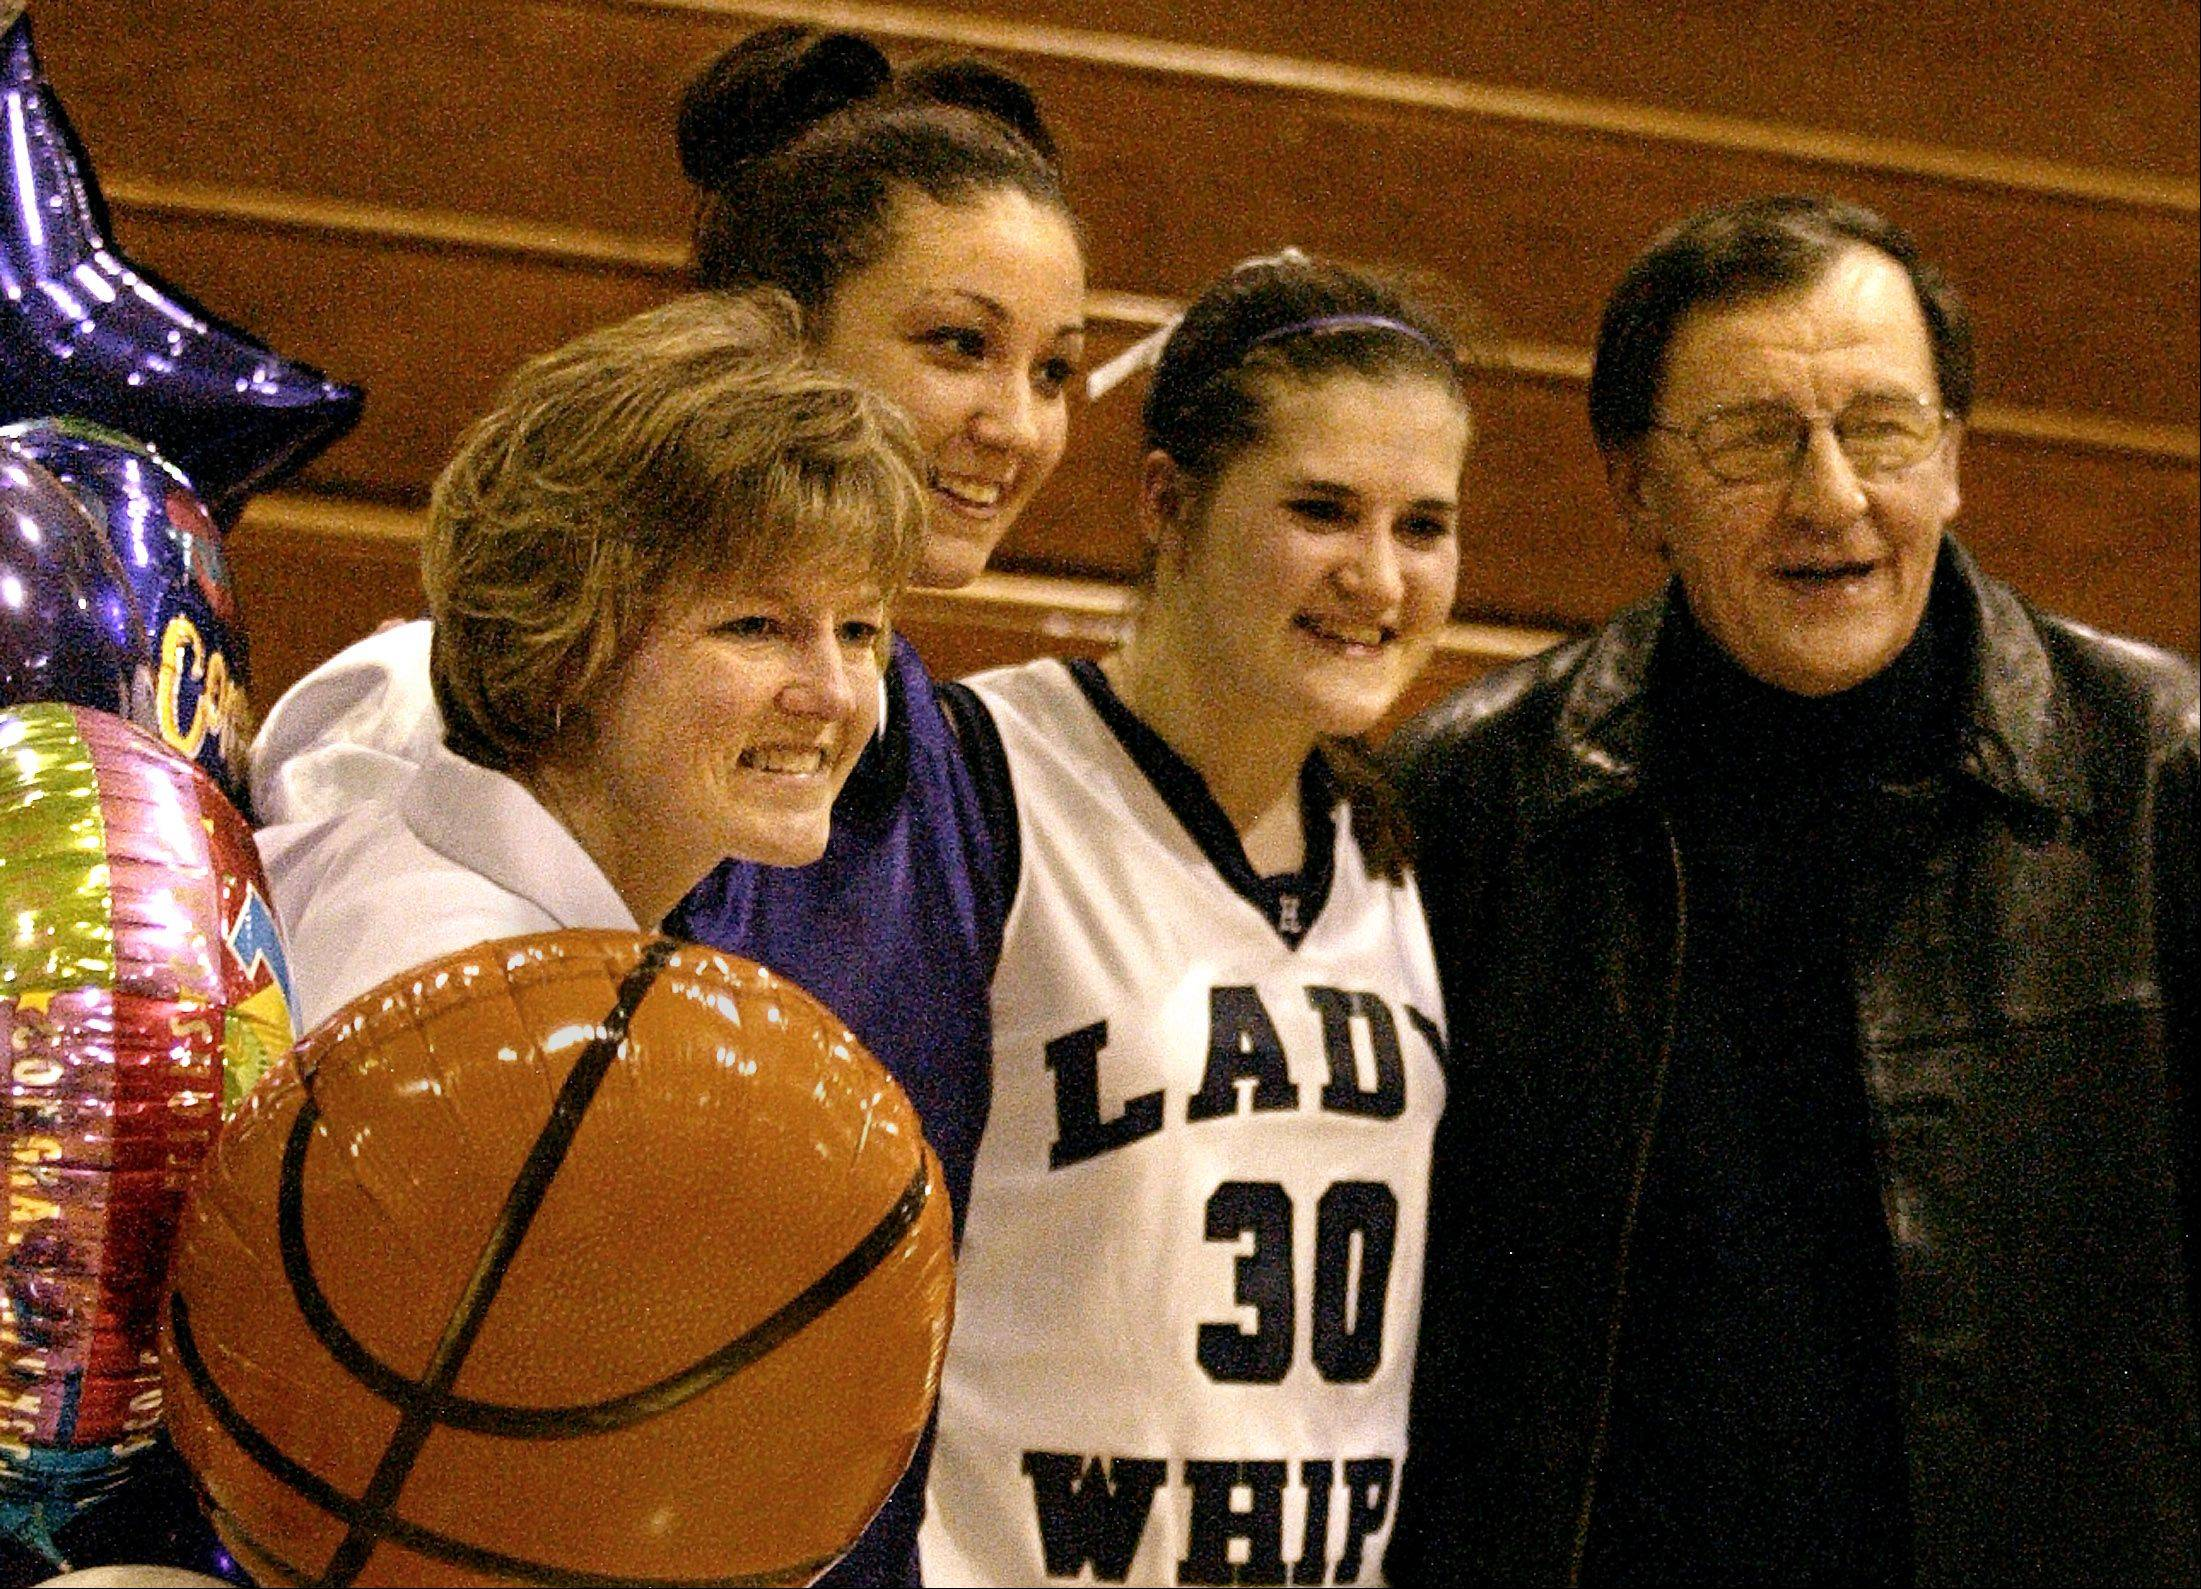 Former Hampshire girls basketball coaches Sue Ellett, left, and Milt Awe celebrate 1,000 career points scored by Nicole Watzlawick (center left) and Jackie Heine (center right) during a game in 2004. Later that season the Whip-Purs finished second in the Class A state tournament and Watzlawick and Heine were named Daily Herald all-area captains.